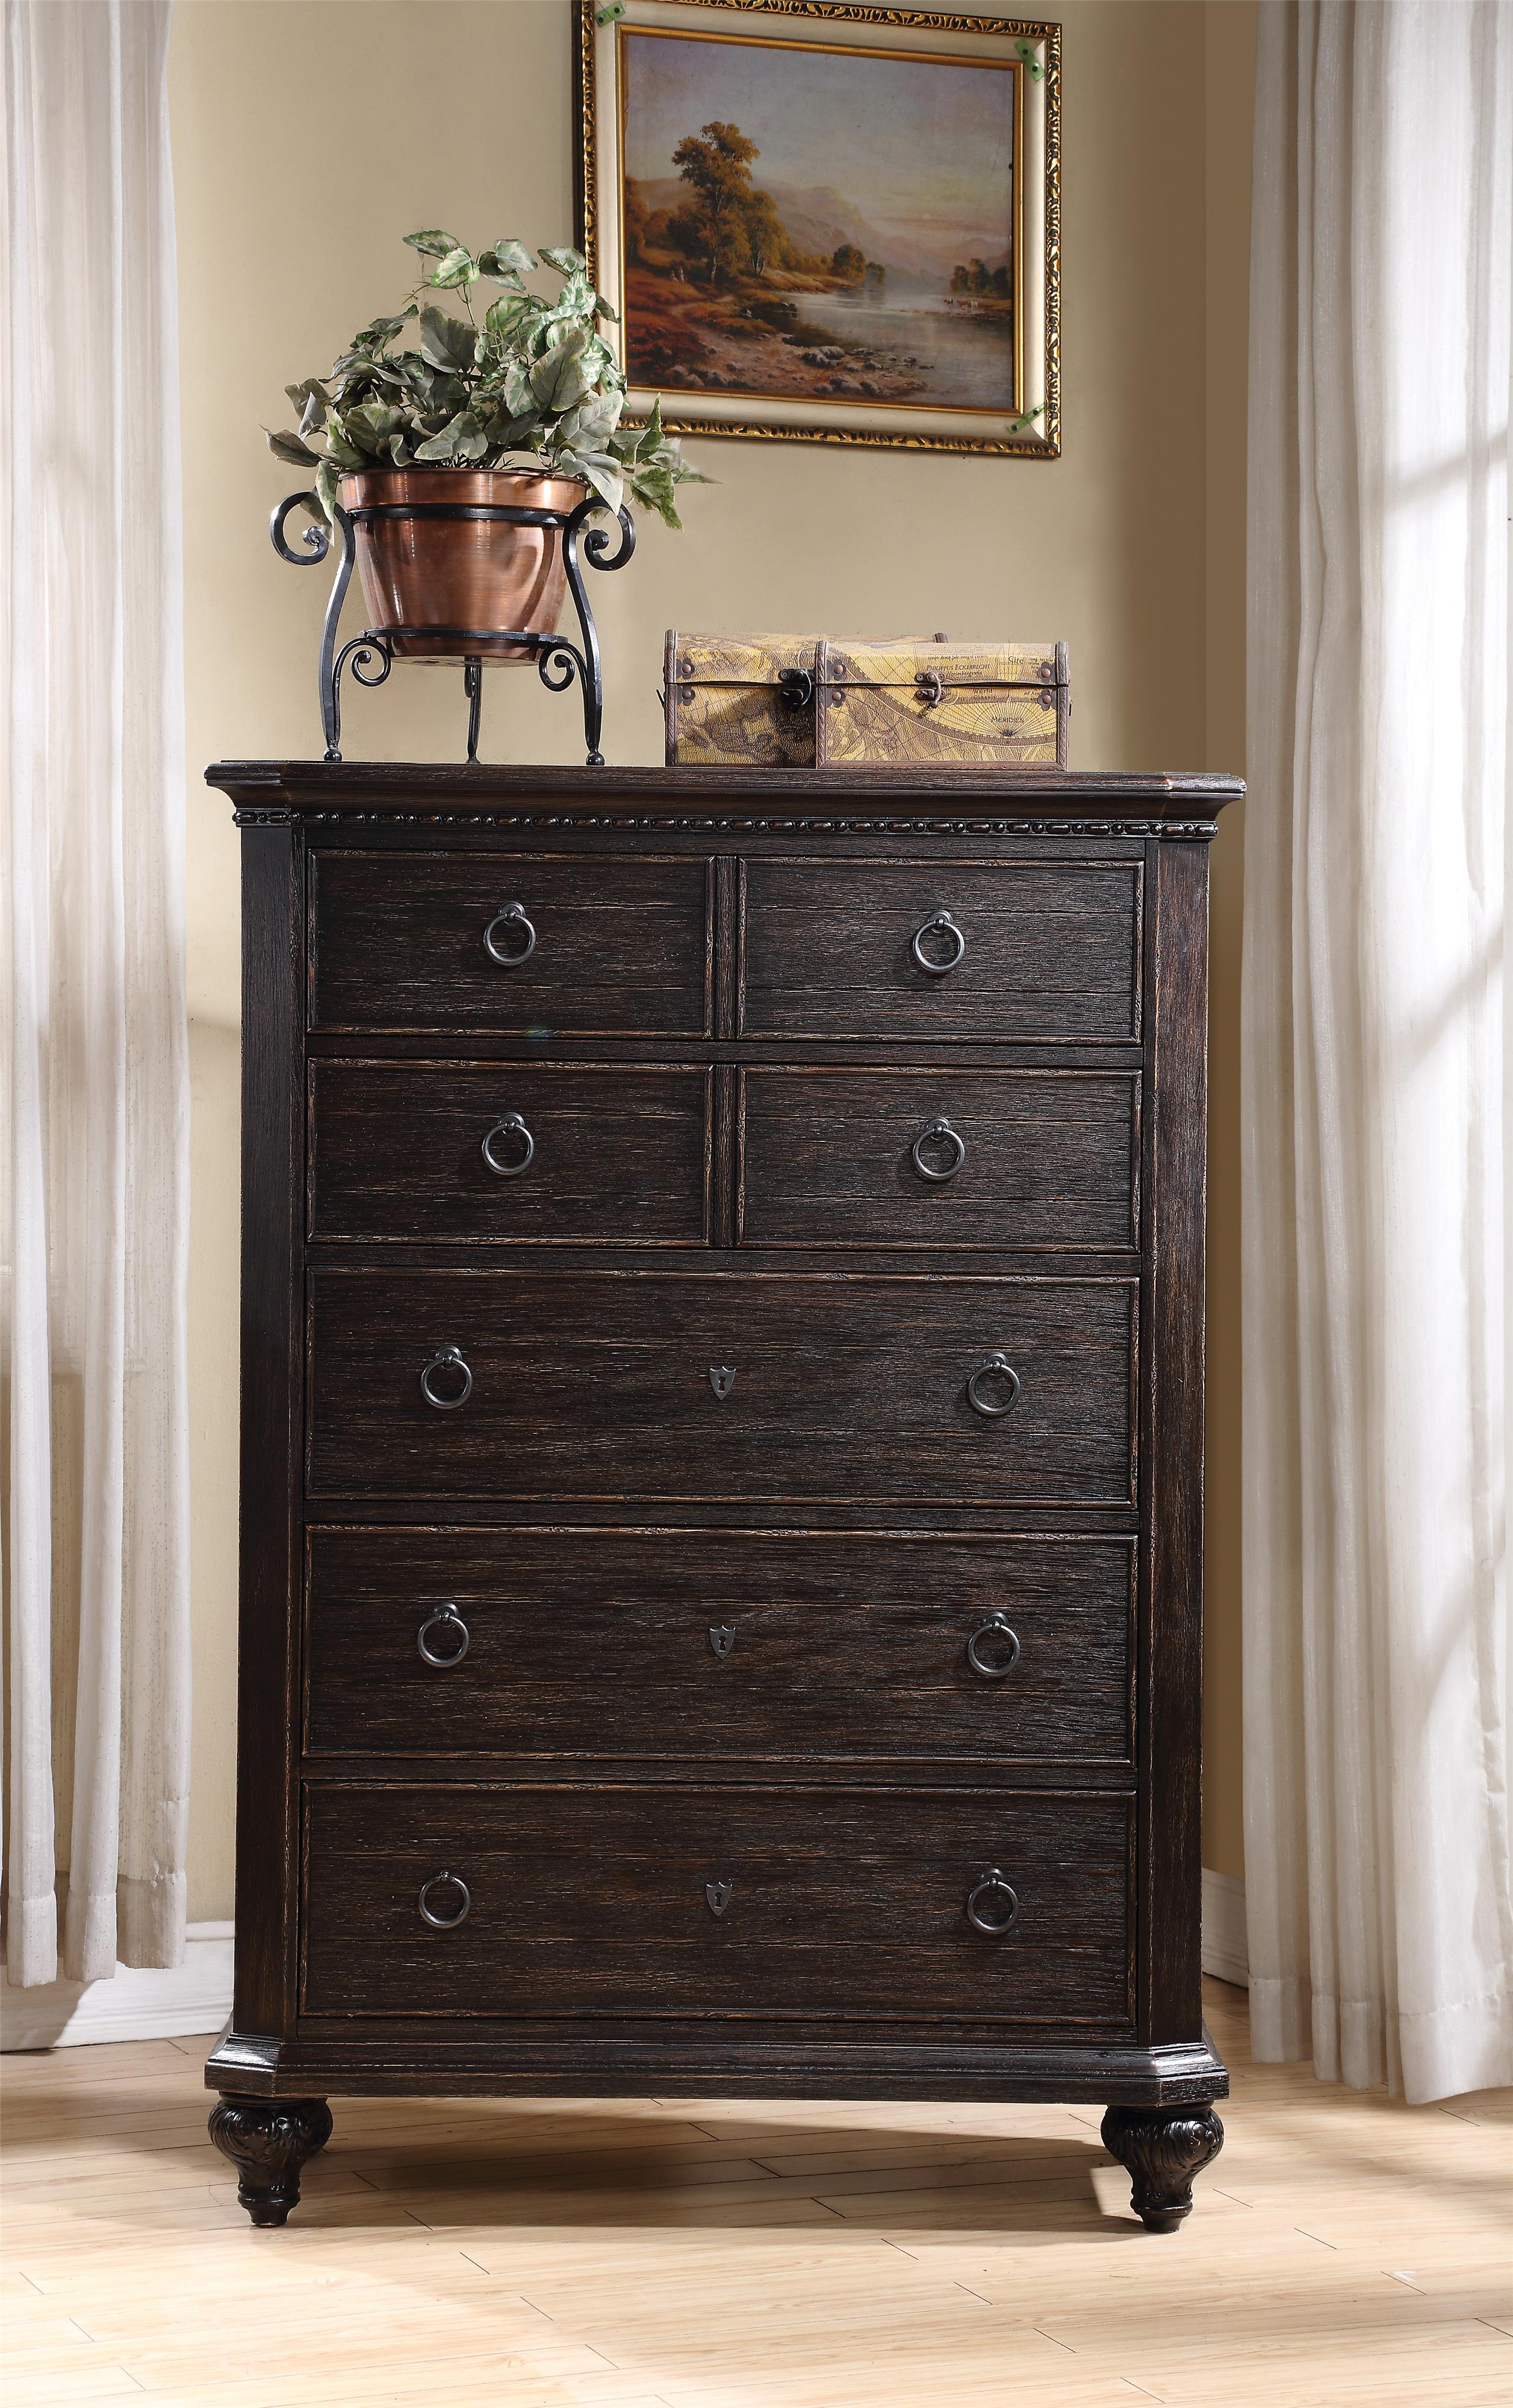 Riverside Furniture Bellagio 5-Drawer Chest - Item Number: 11865